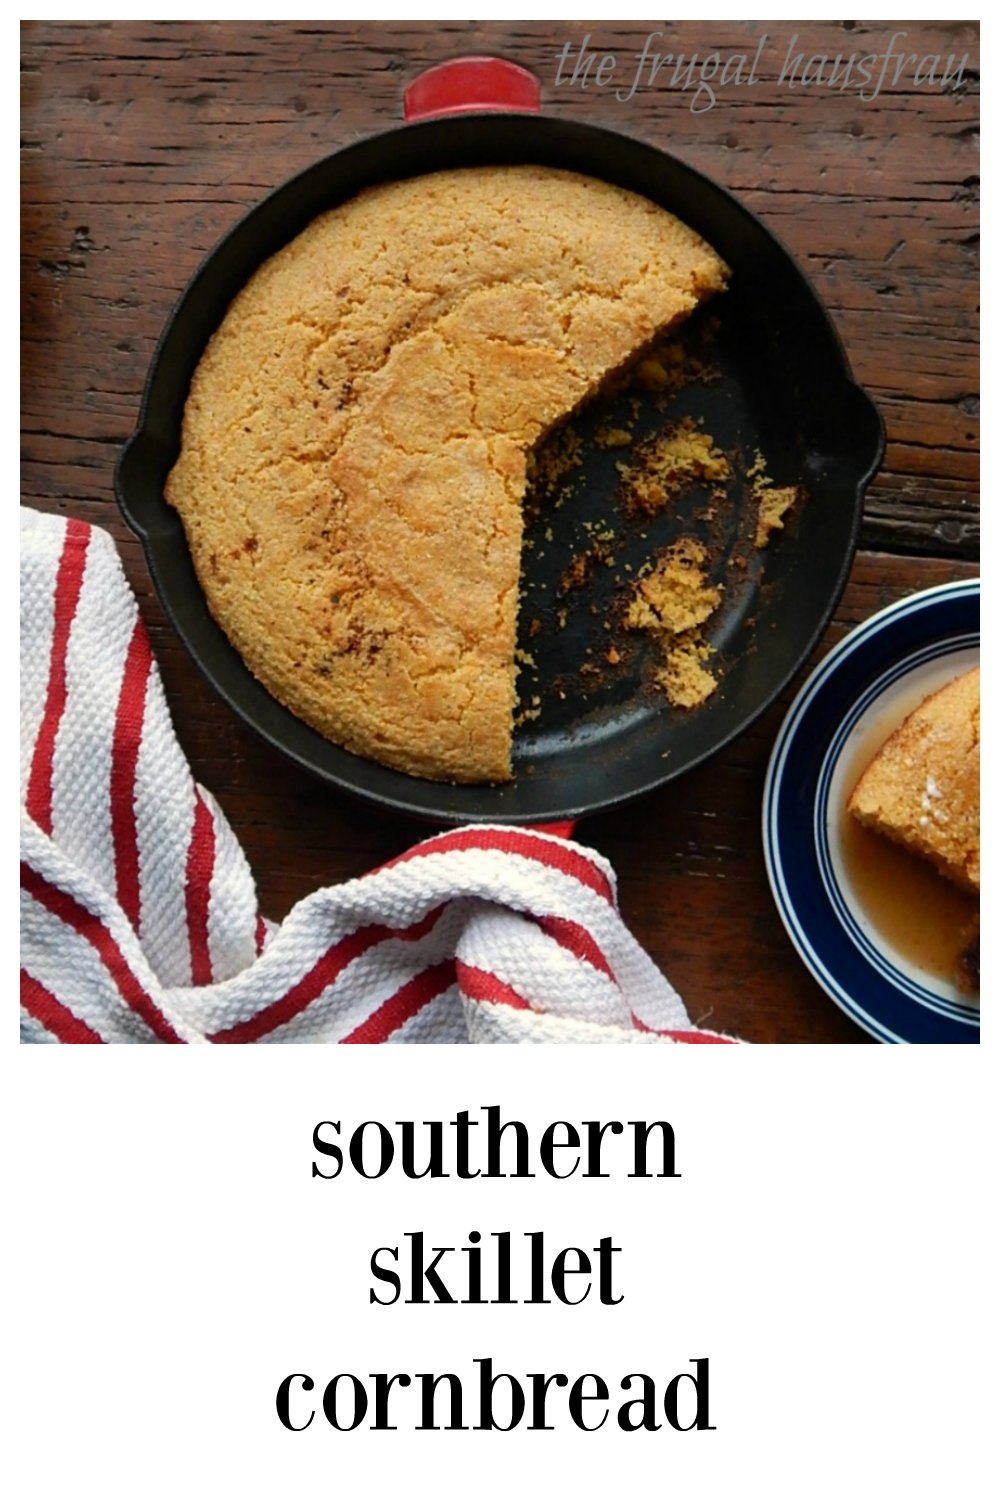 This is real deal Southern Skillet Cornbread; crumble it in soup, top with butter and/or syrup or make Cornbread Dressing or Salad. Quick and easy; takes less than 30 minutes. #SouthernCornbread #SkilletCornbread #SouthernSkilletCornbread #CornbreadBaconDrippings